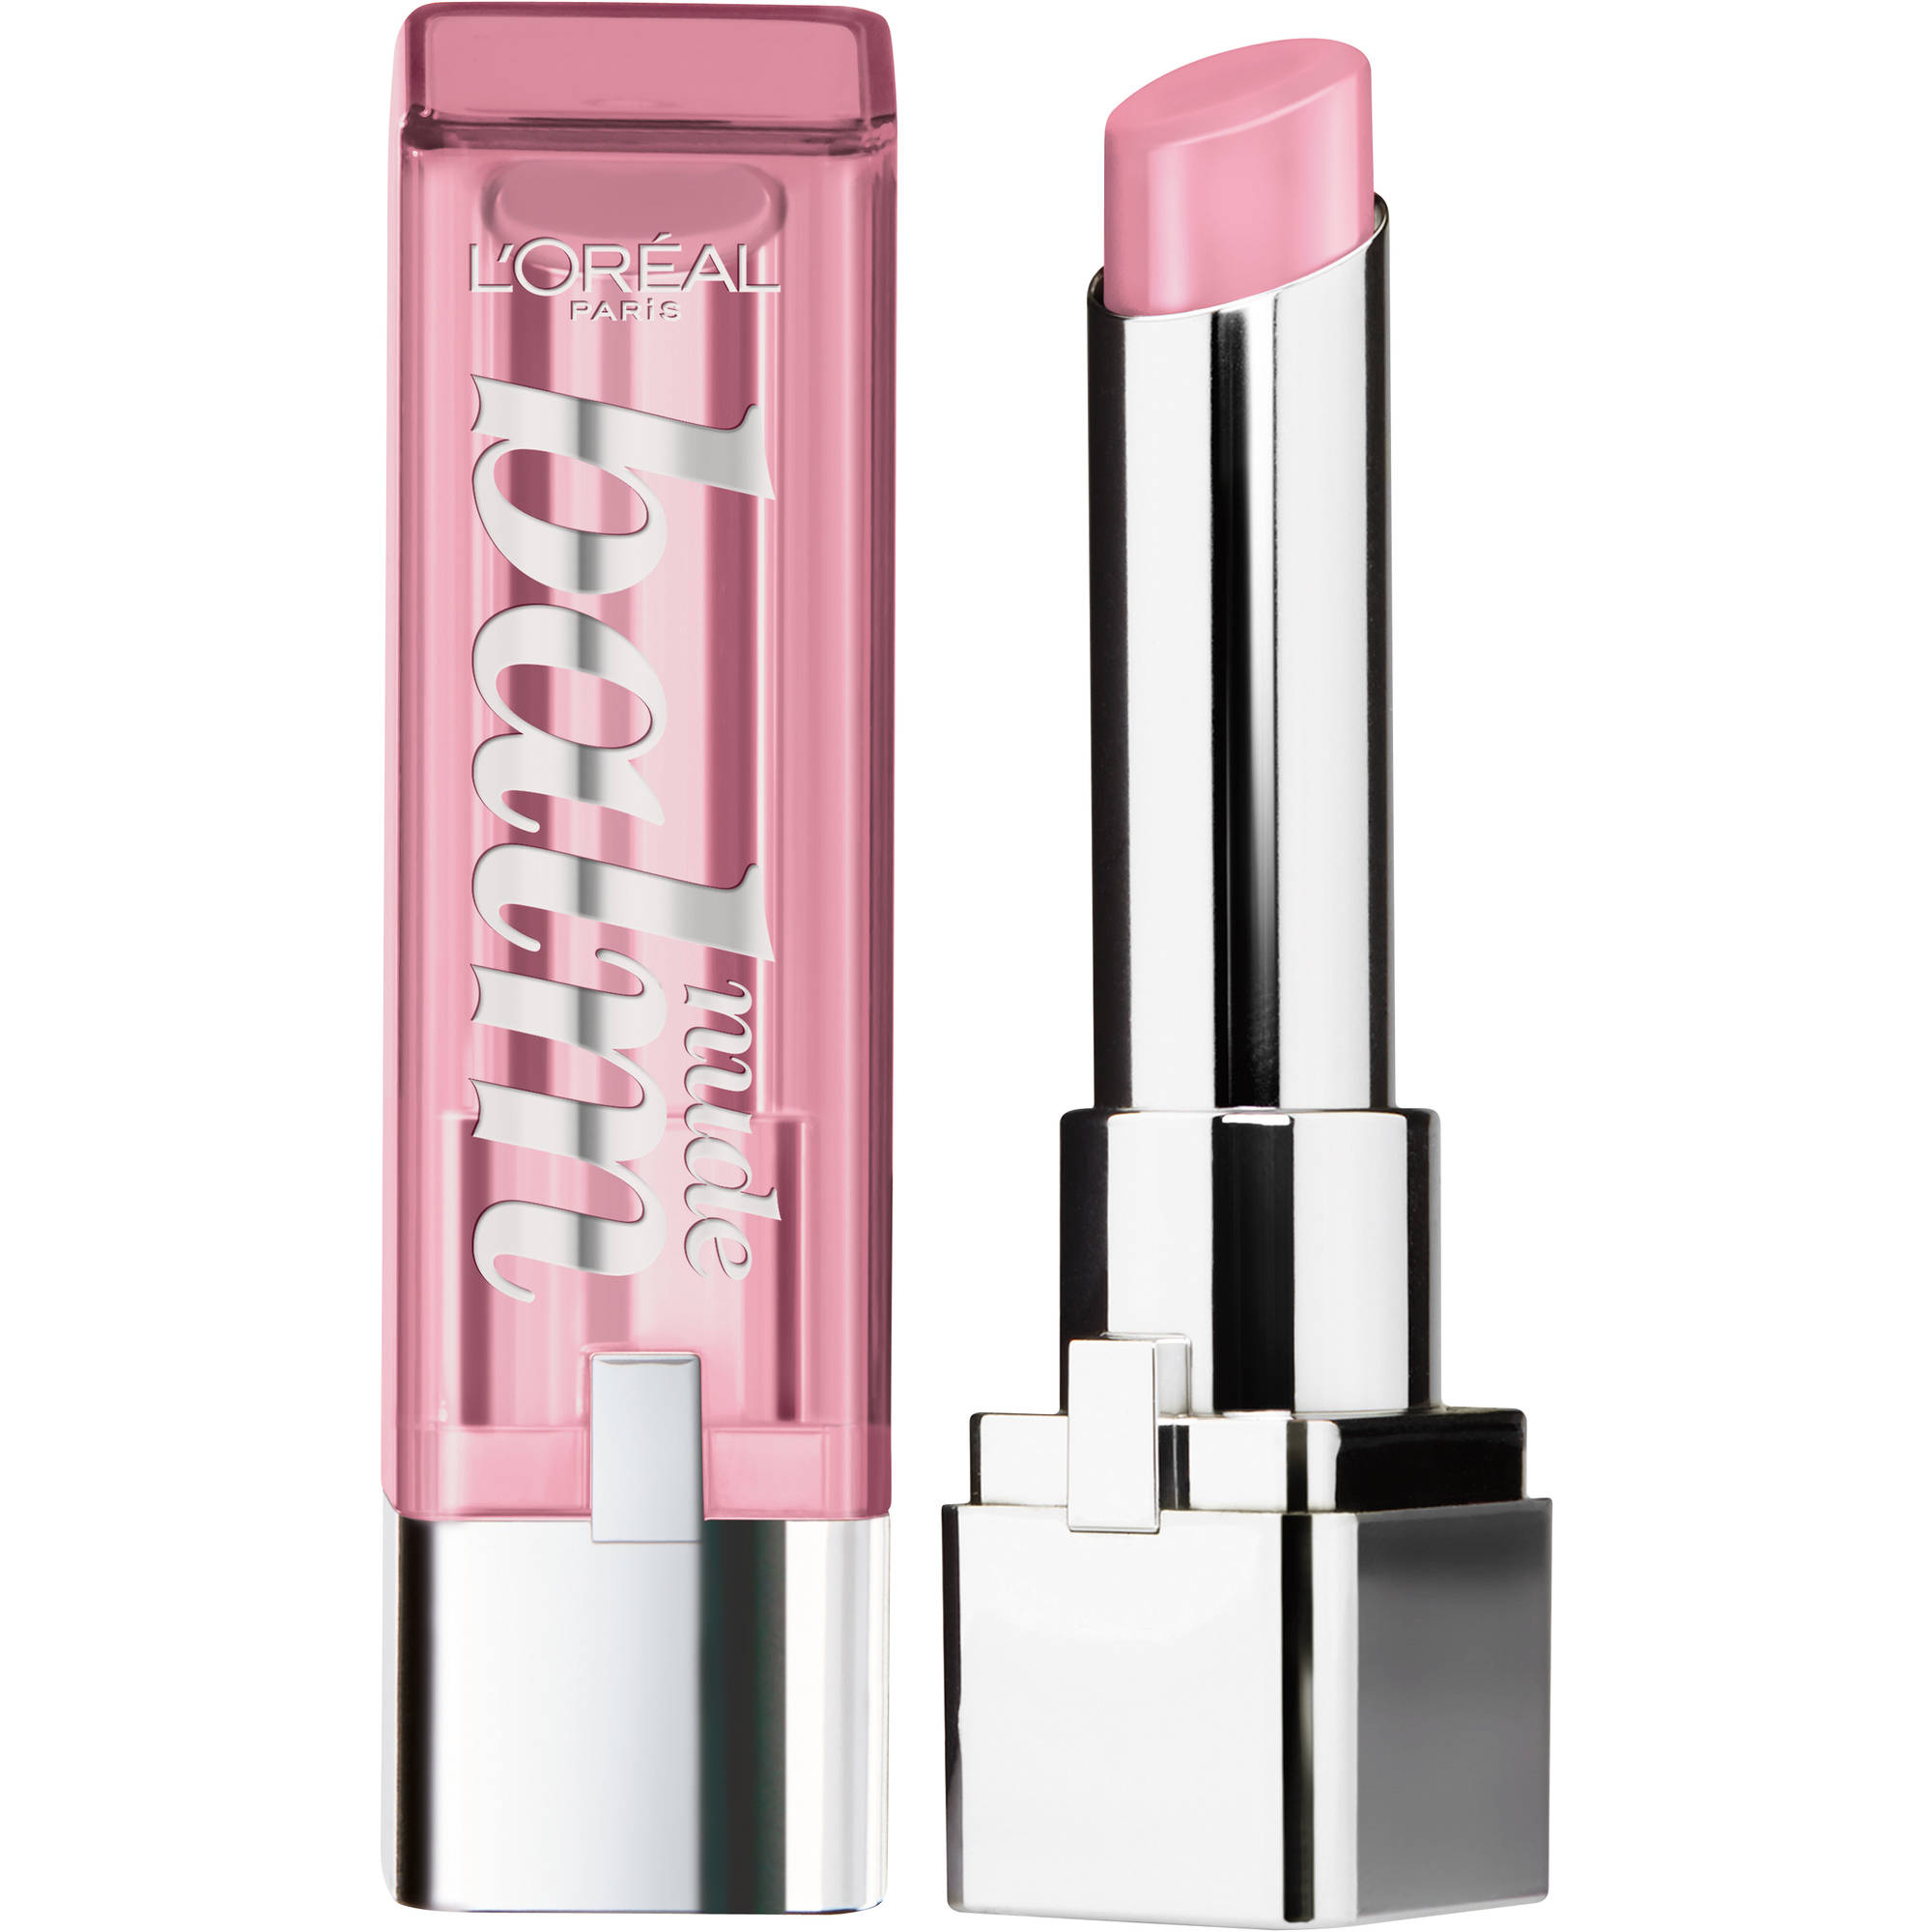 L'Oreal Paris Colour Riche Lip Balm, Pink Satin